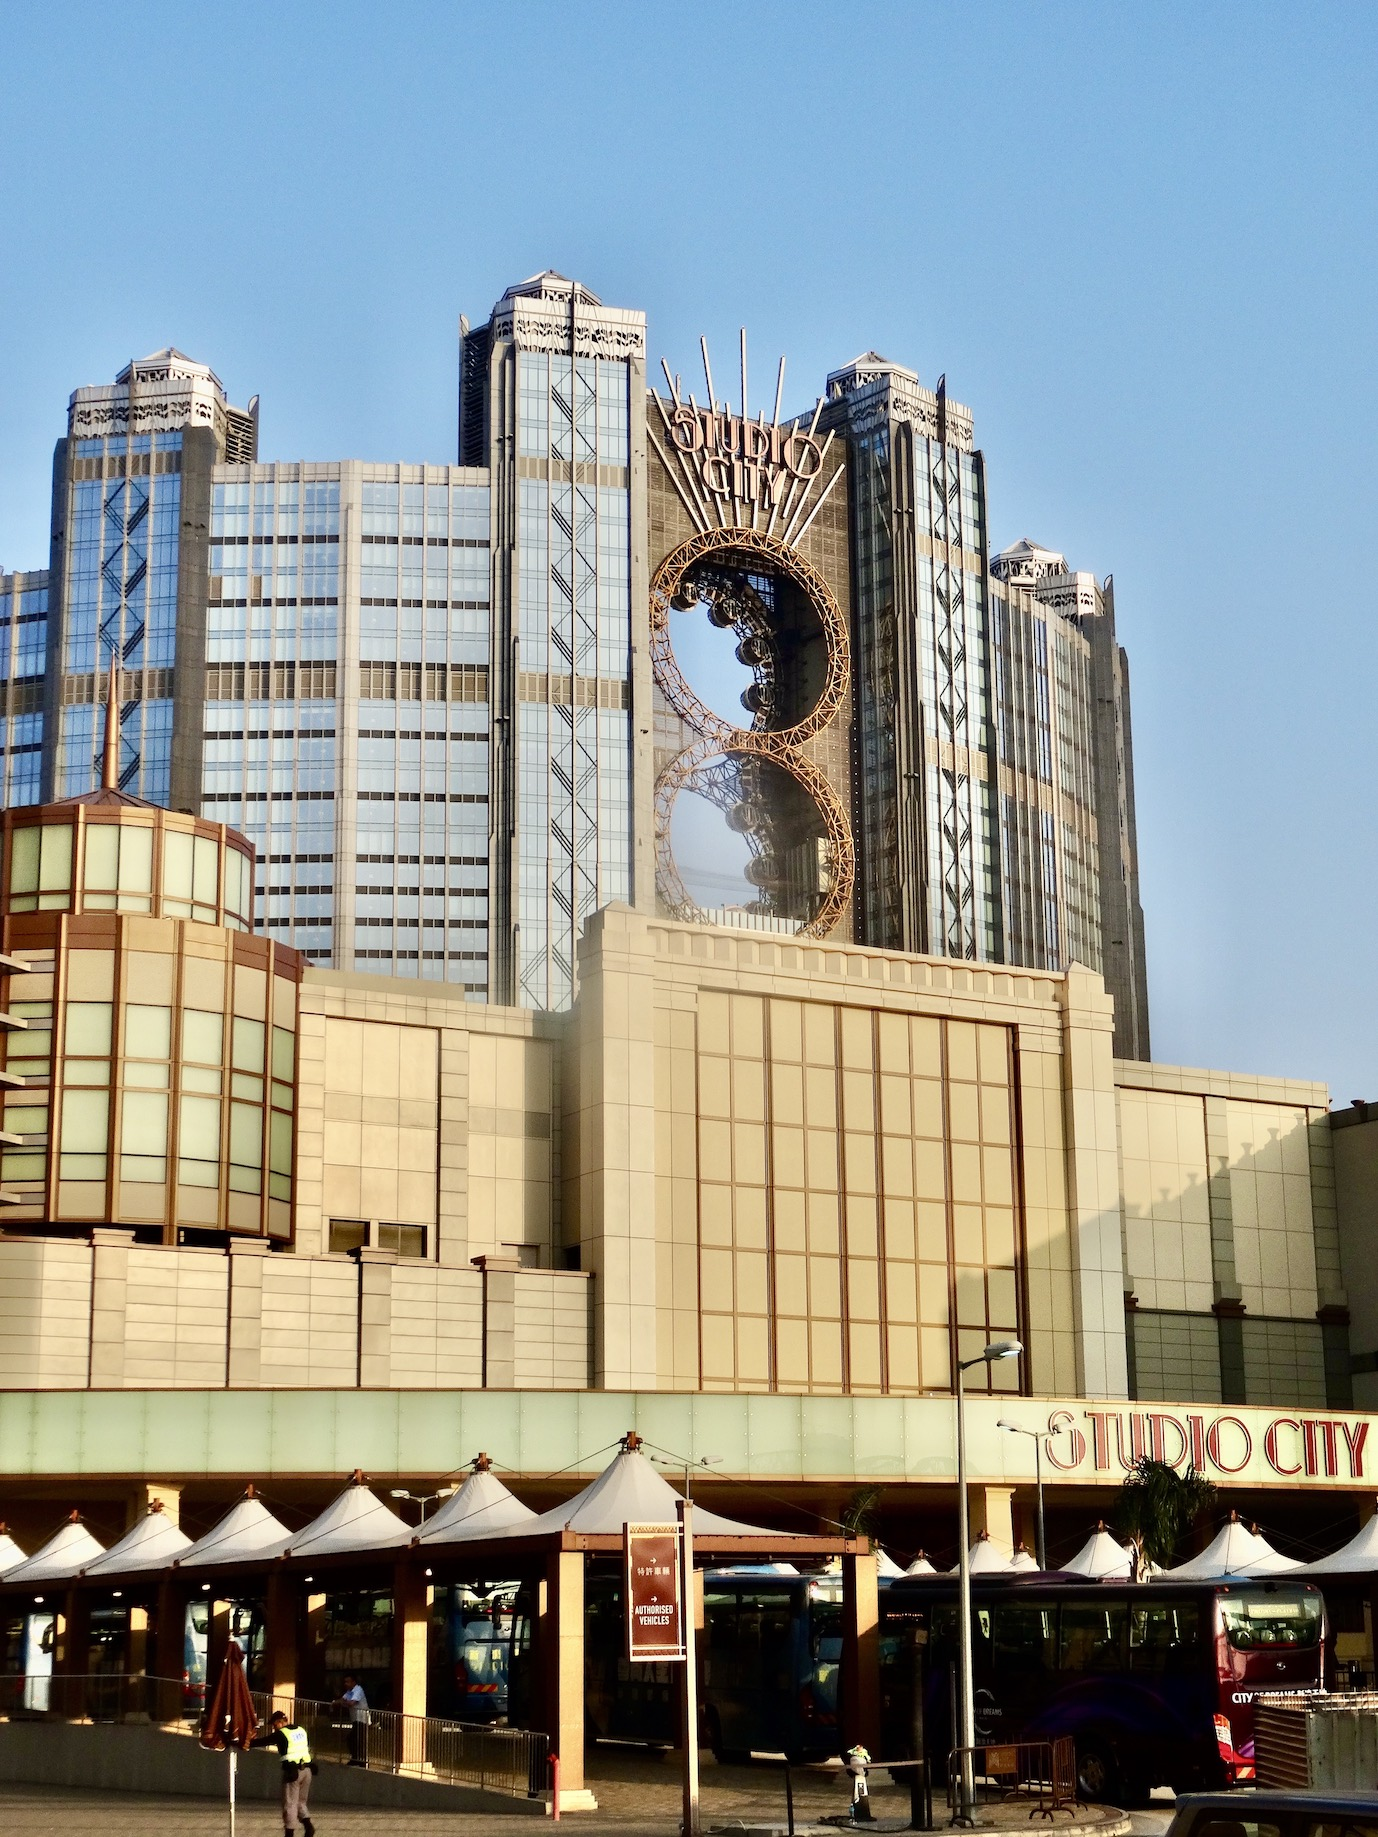 Visit Studio City Macau.